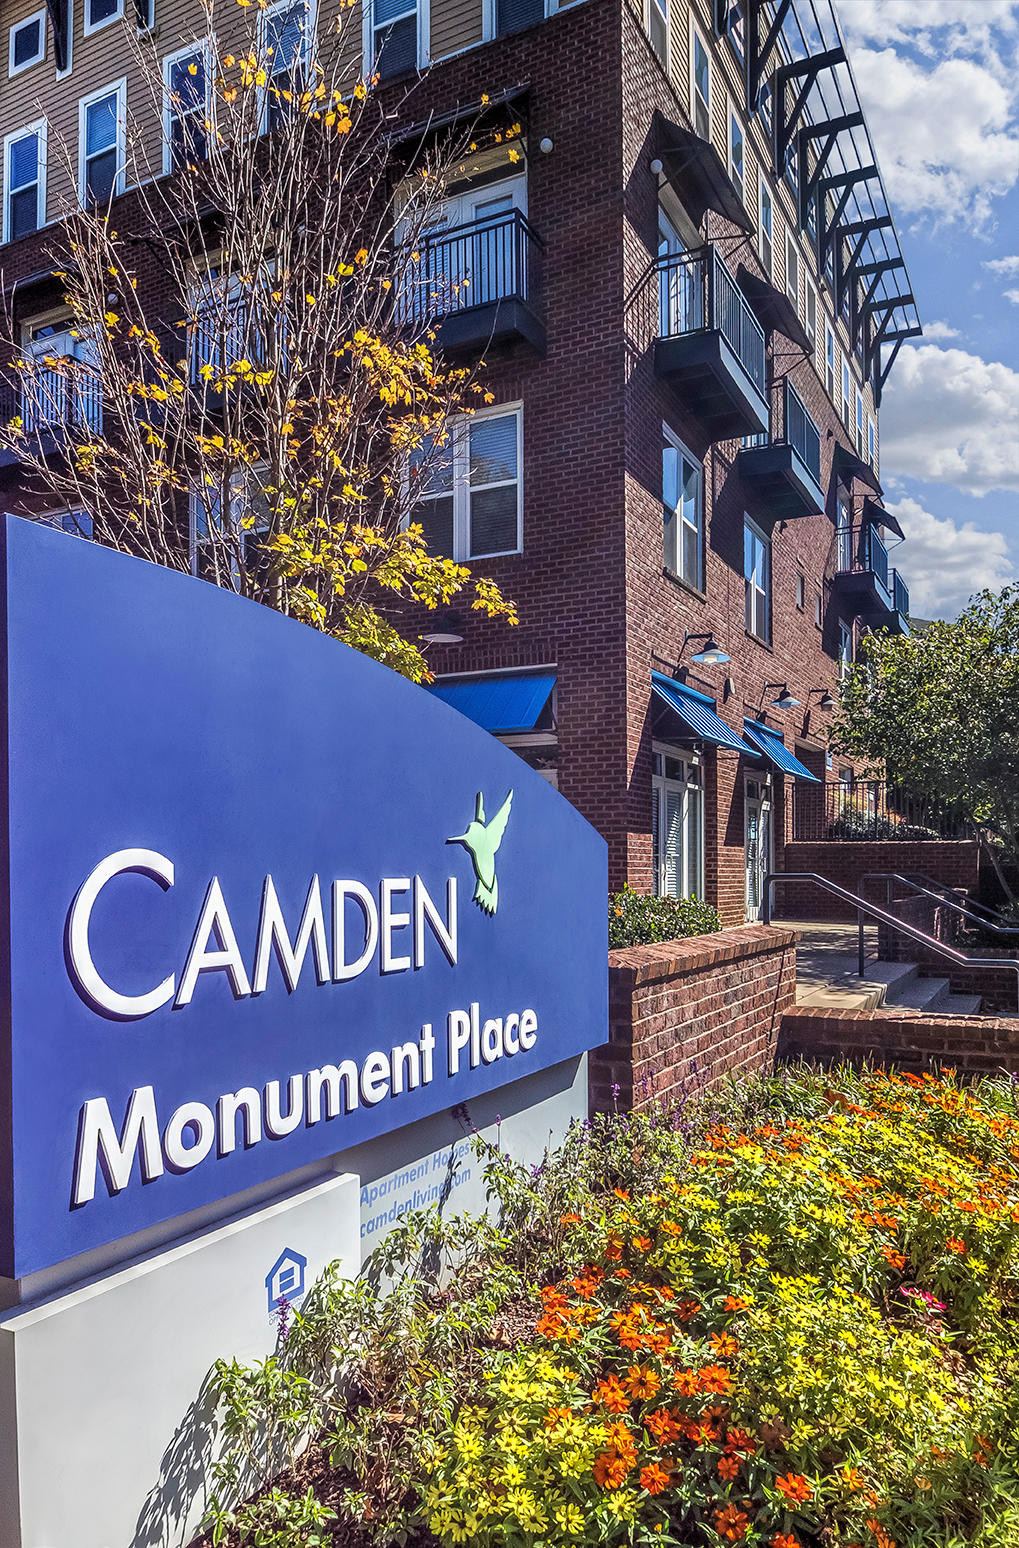 Camden Monument Place Apartments image 20